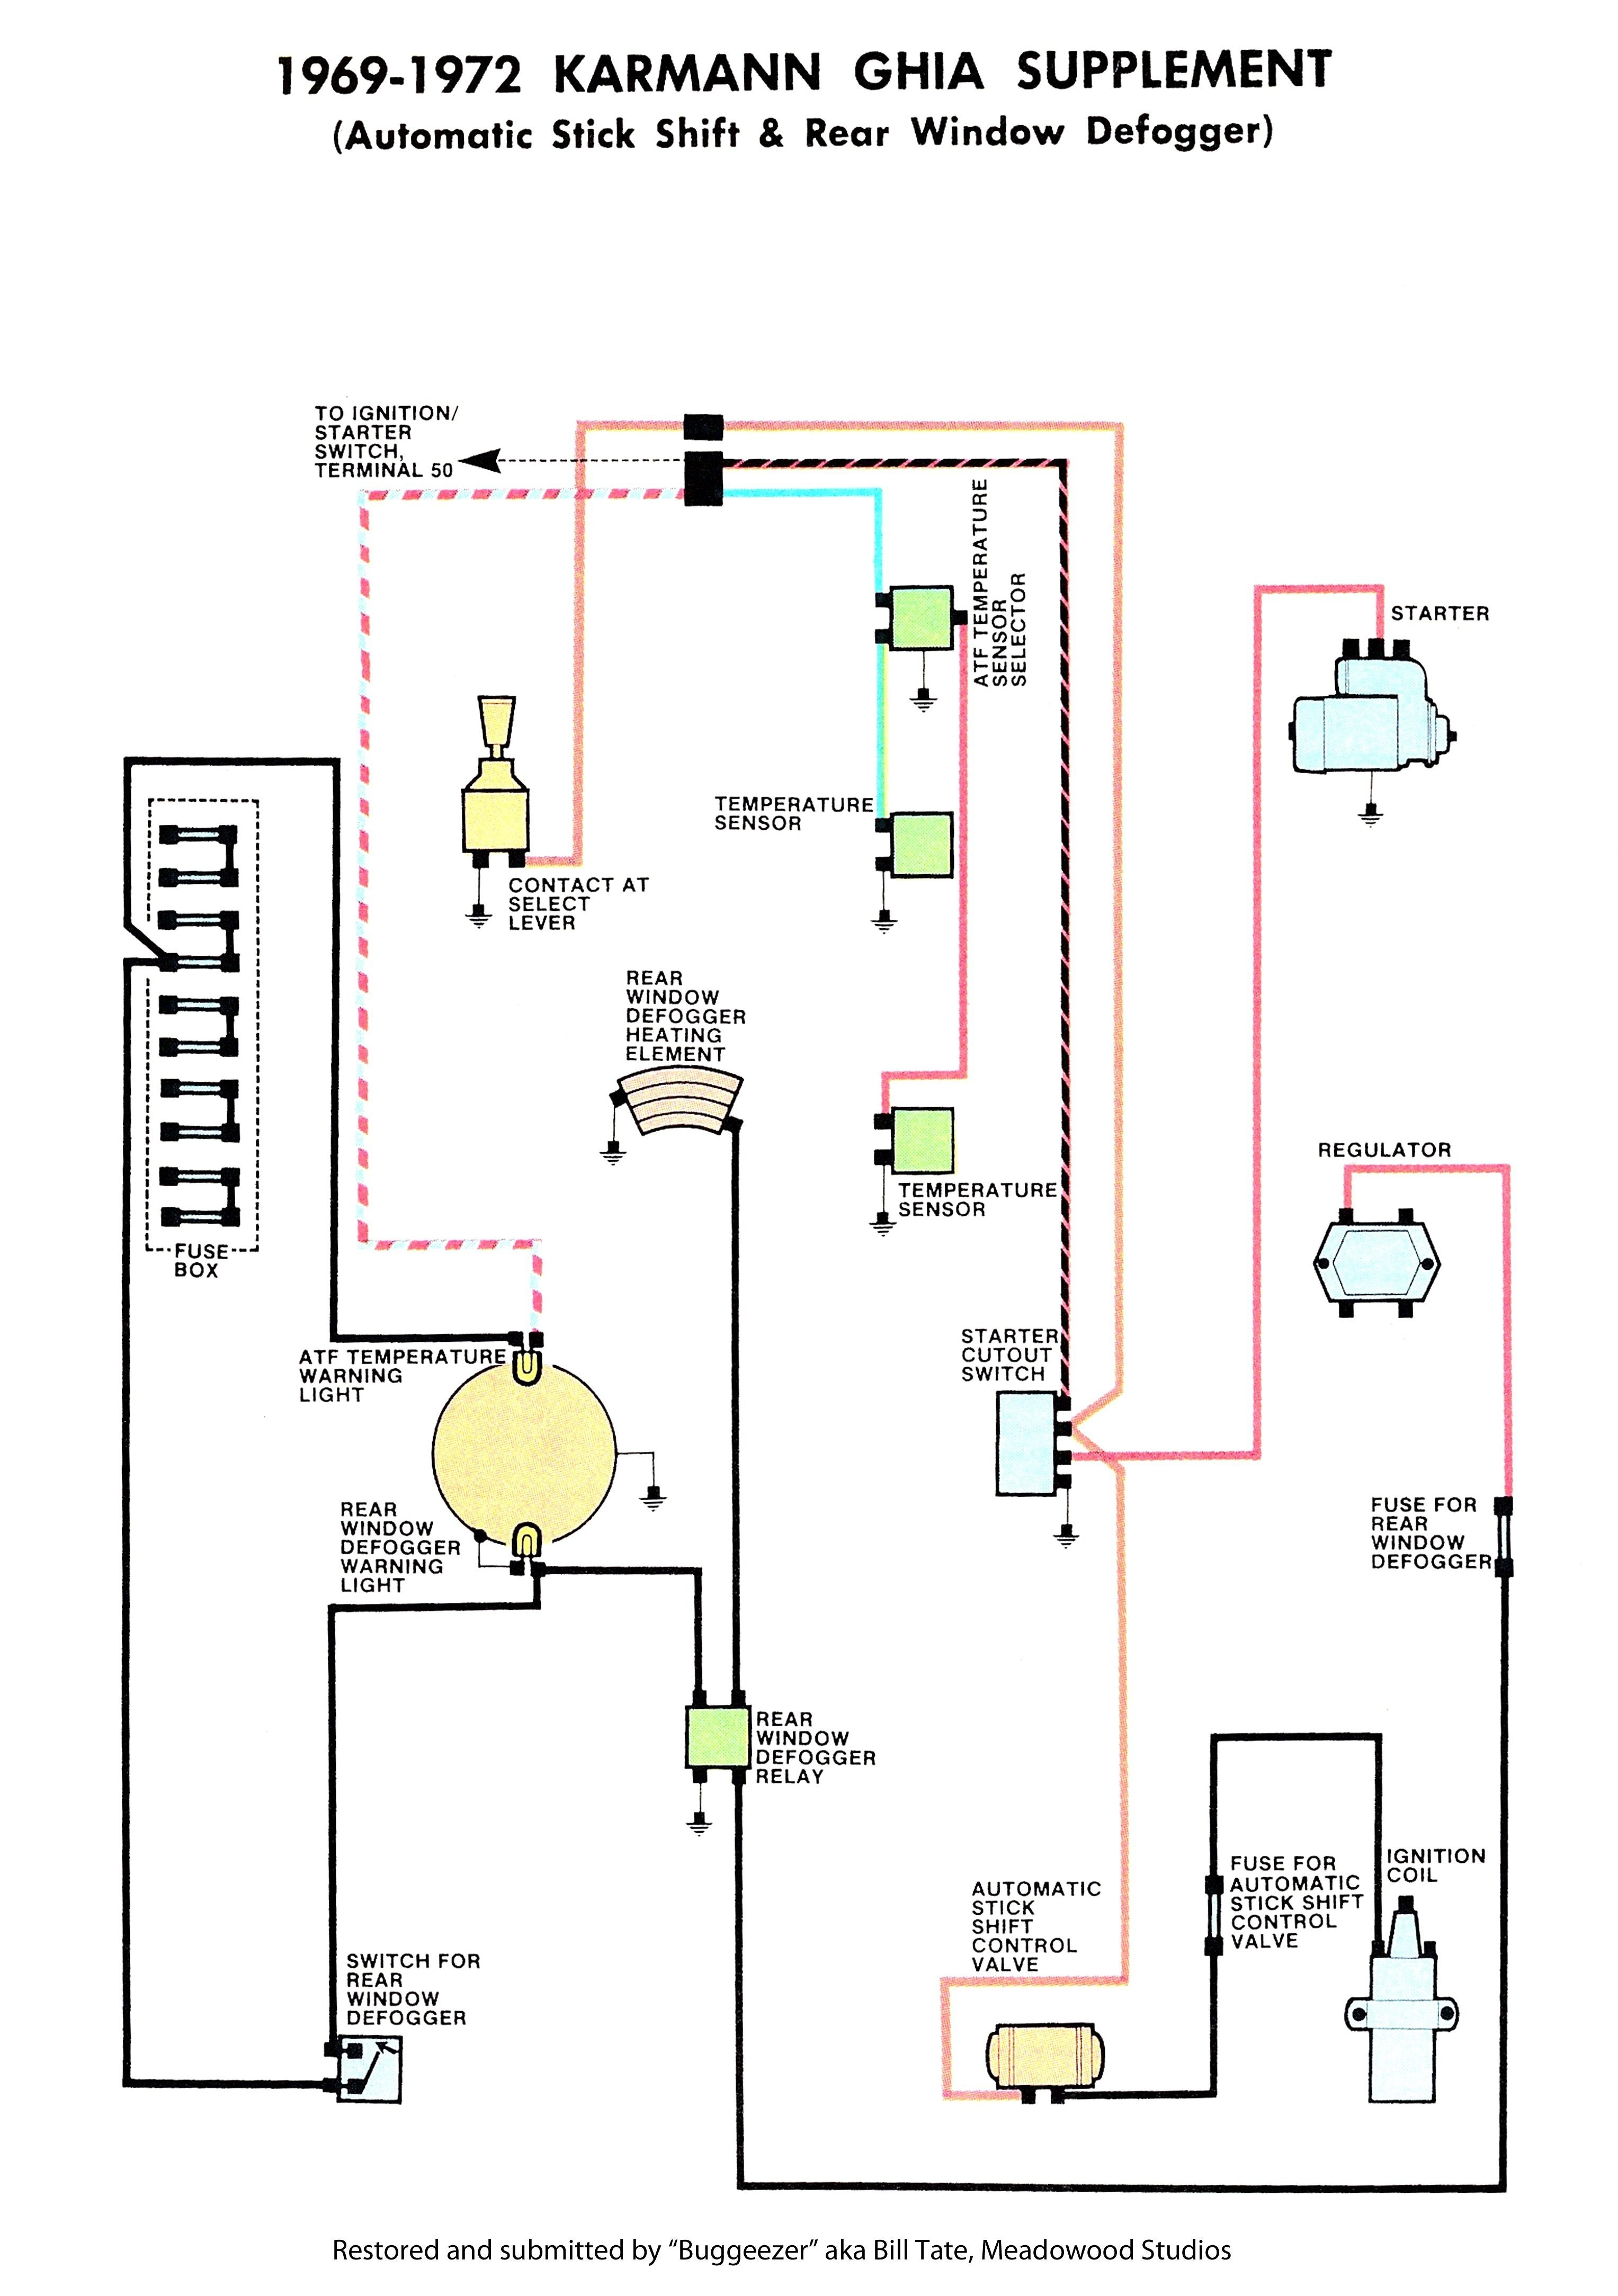 honeywell fan limit switch wiring diagram Collection-Honeywell Limit Switch Wiring Diagram Gallery Awesome Honeywell Fan Limit Switch Wiring Diagram 17-h